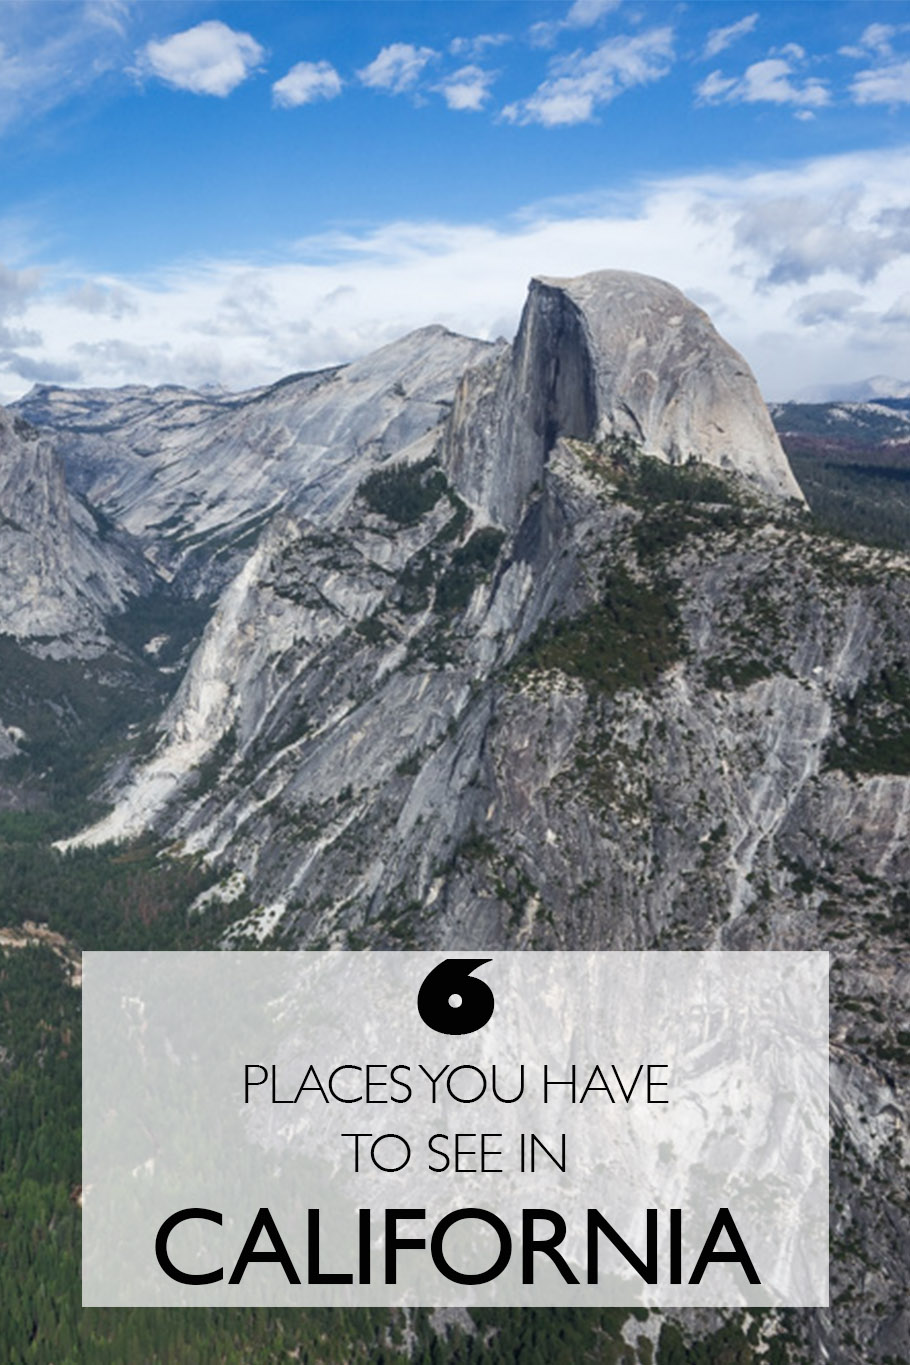 Six Places You Have To See In California | California Roadtrip | Big Sur | San Francisco | Death Valley | Yosemite | Sequoia National Park | Lake Tahoe